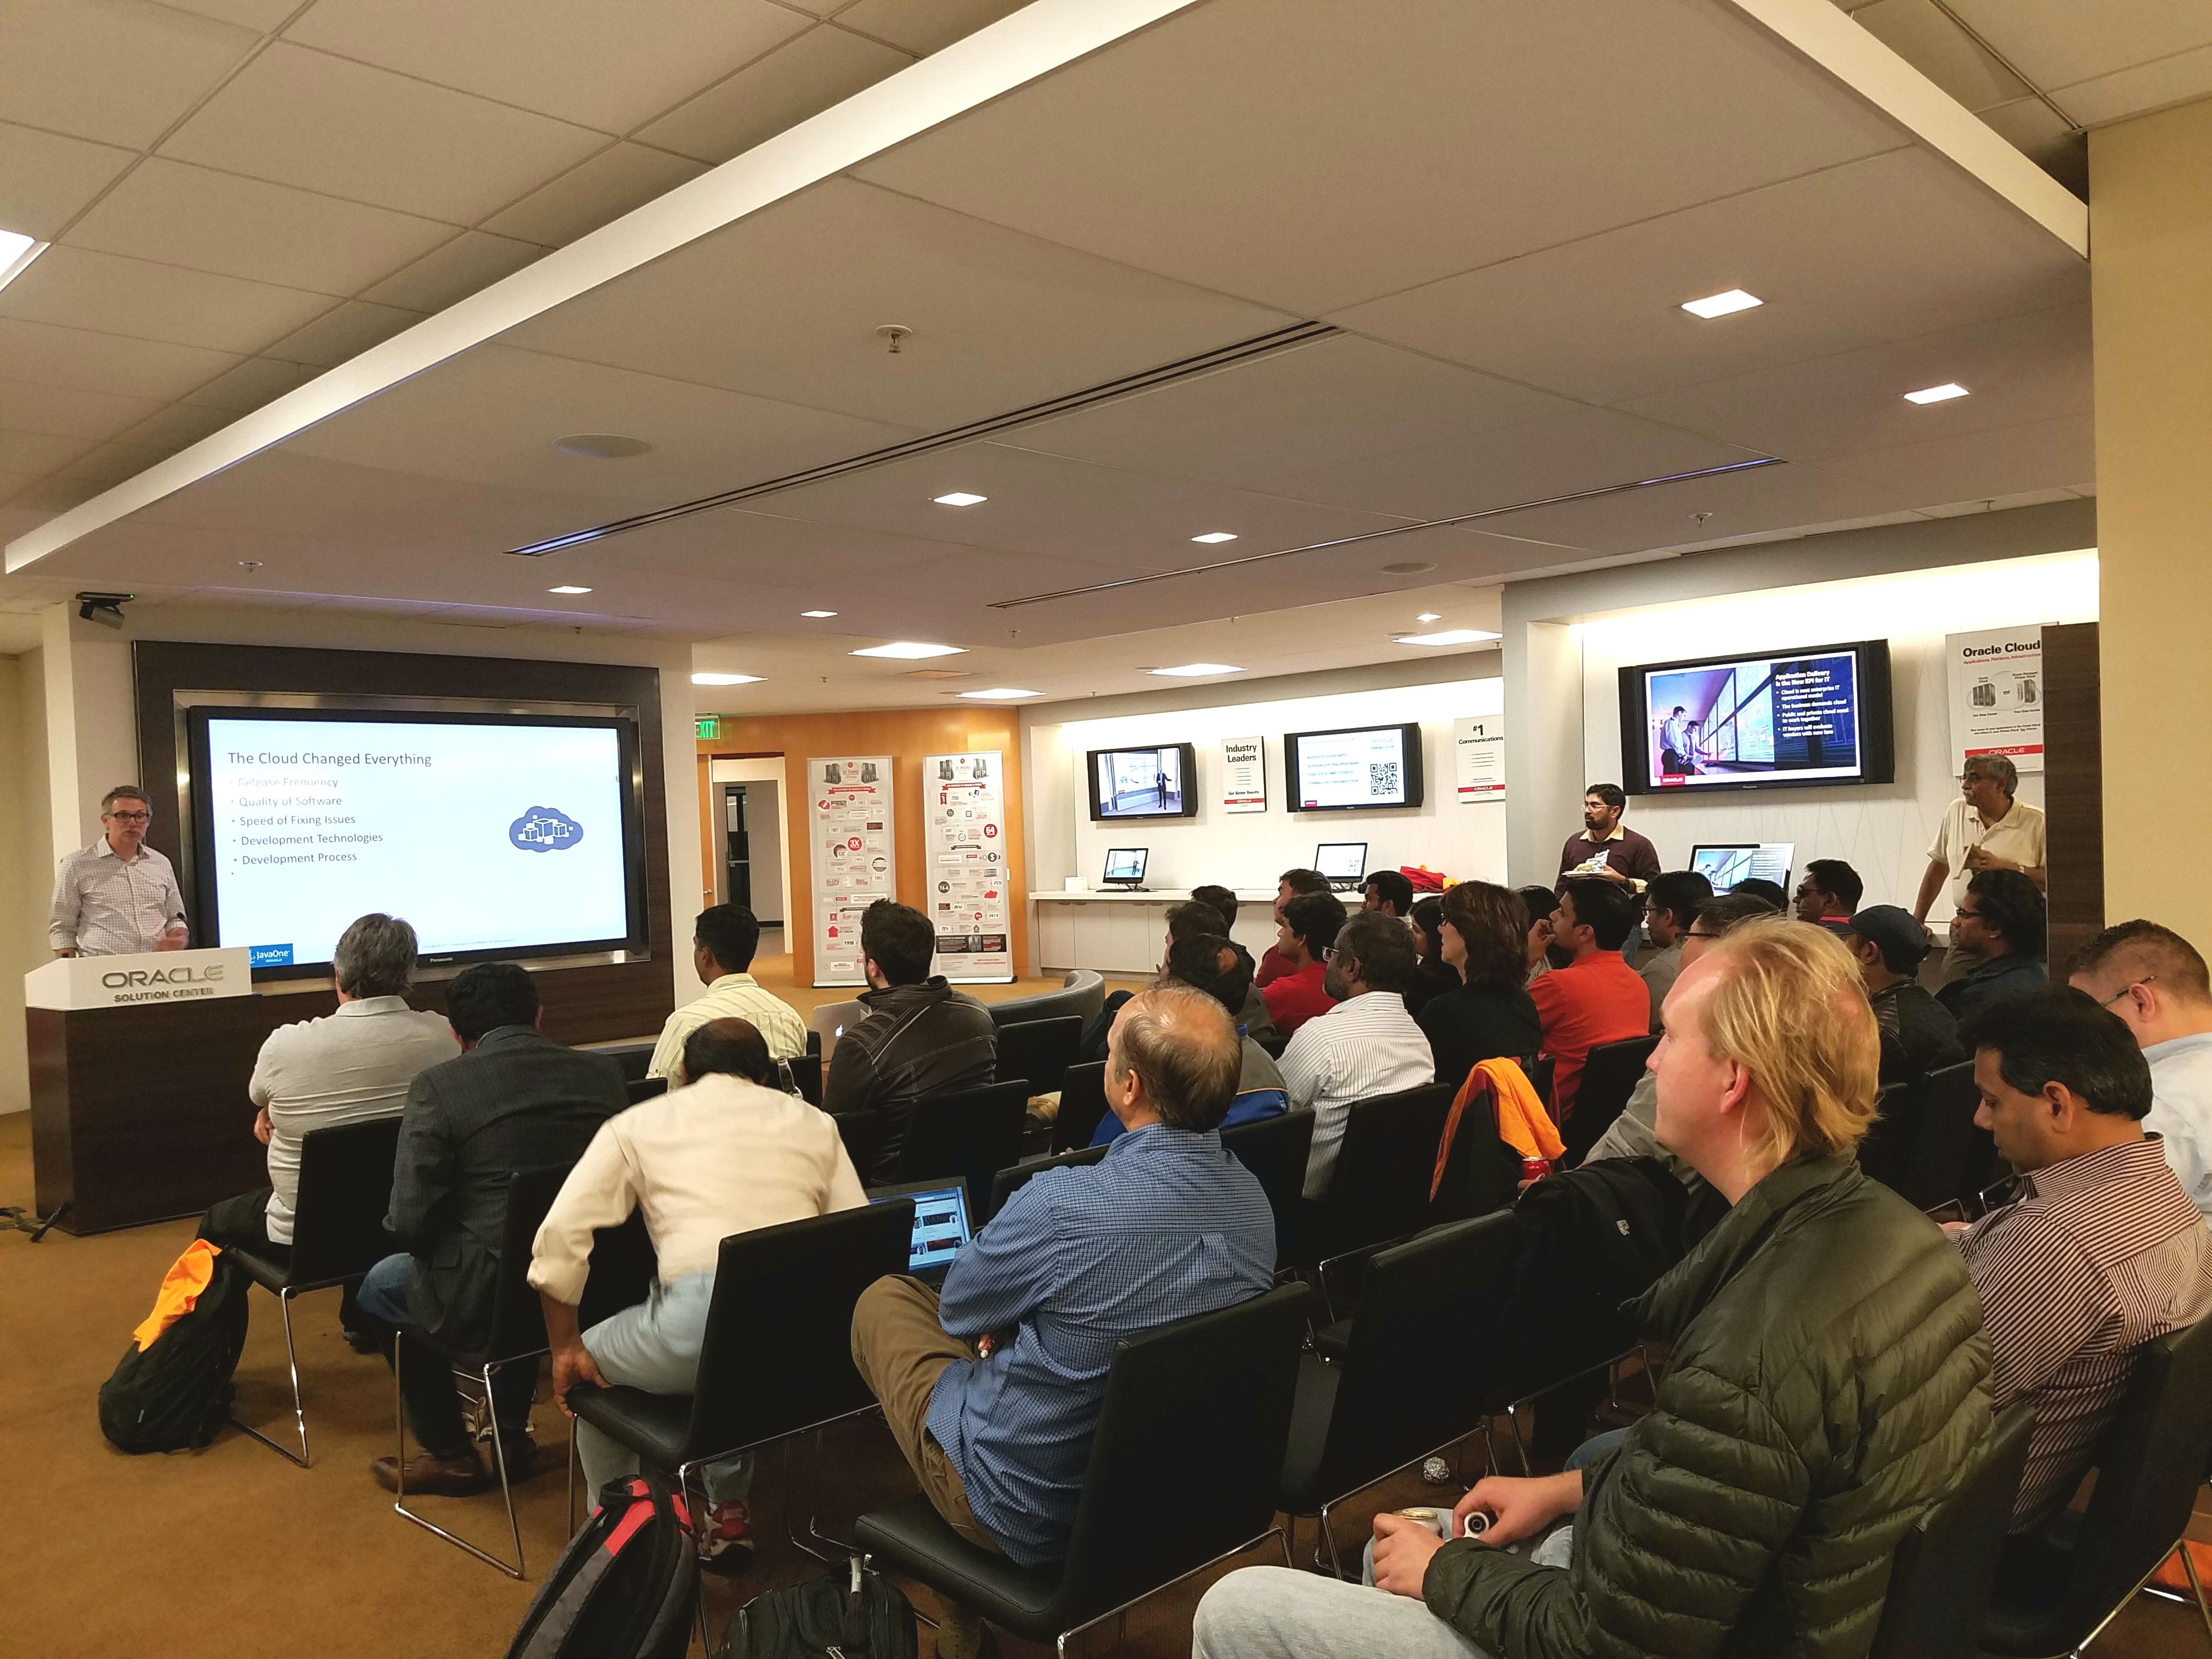 Microservices and Cloud Native Architectures - SF Bay Area